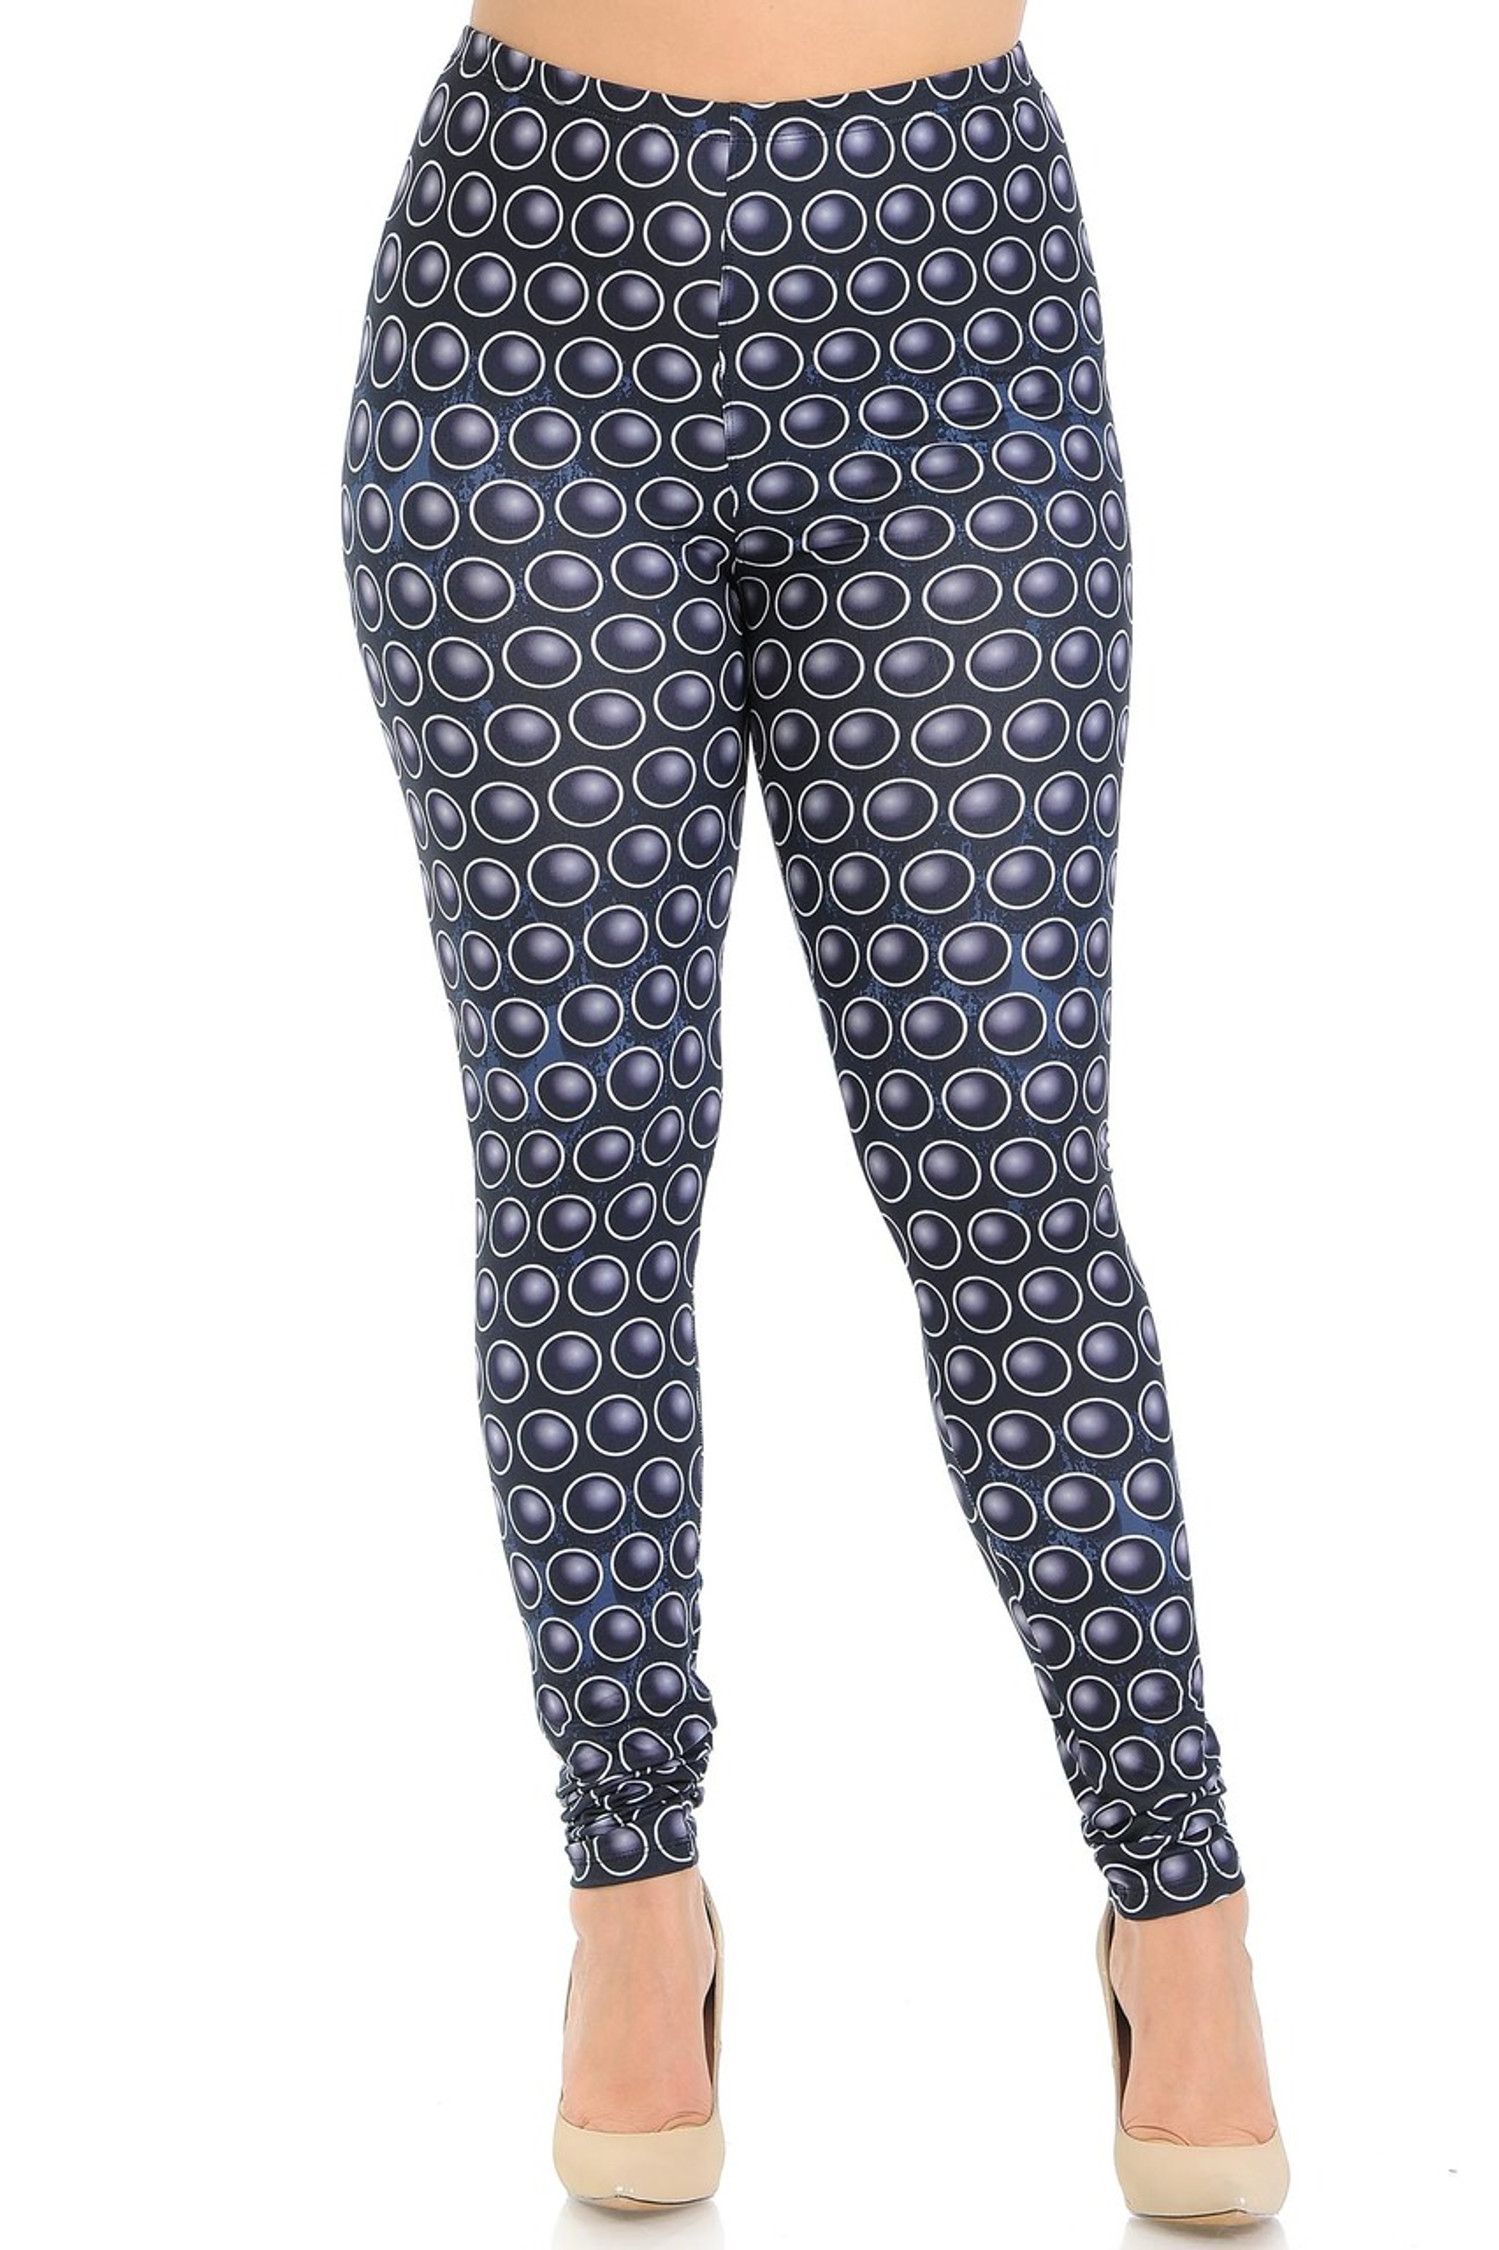 Creamy Soft 3D Ball Bearing Plus Size Leggings - Signature Collection